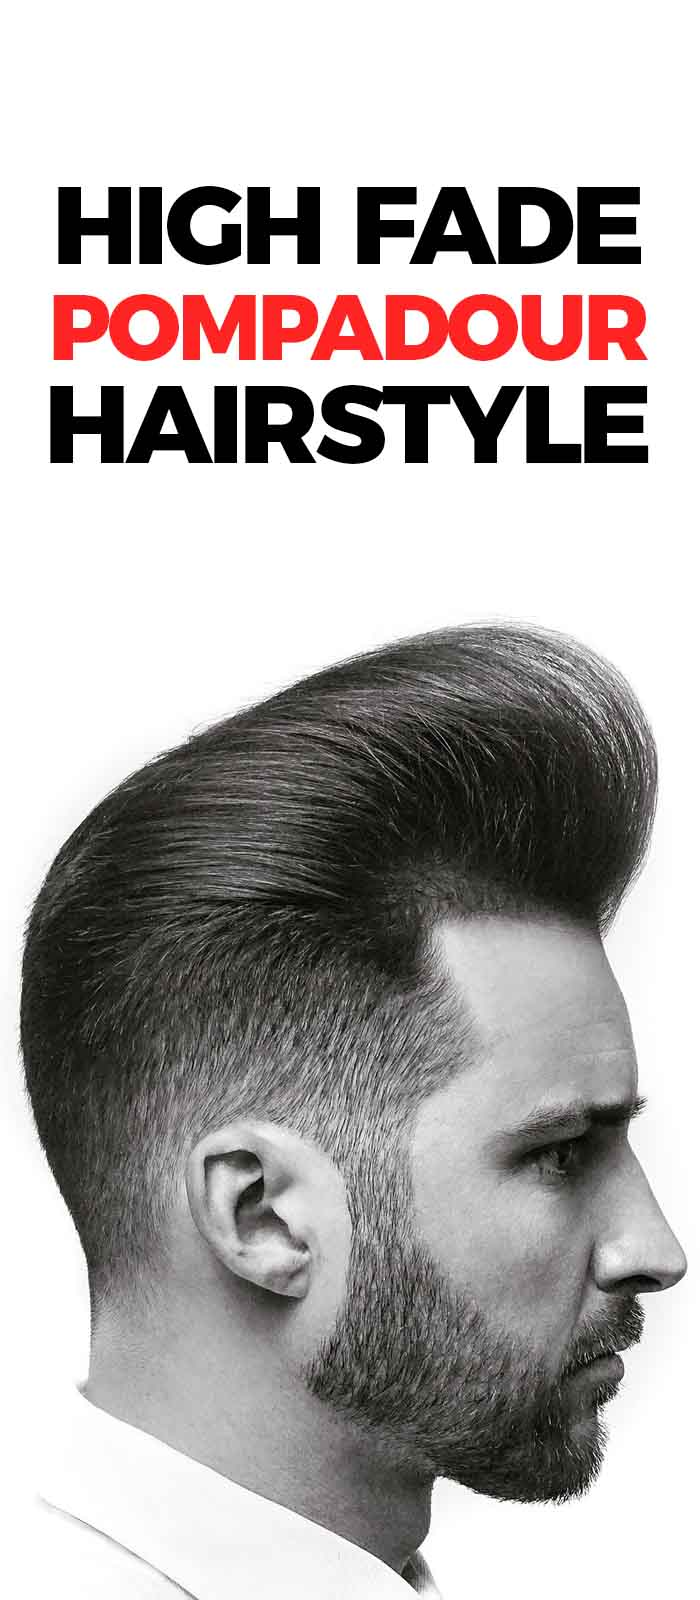 High Fade Pompadour Hairstyle!